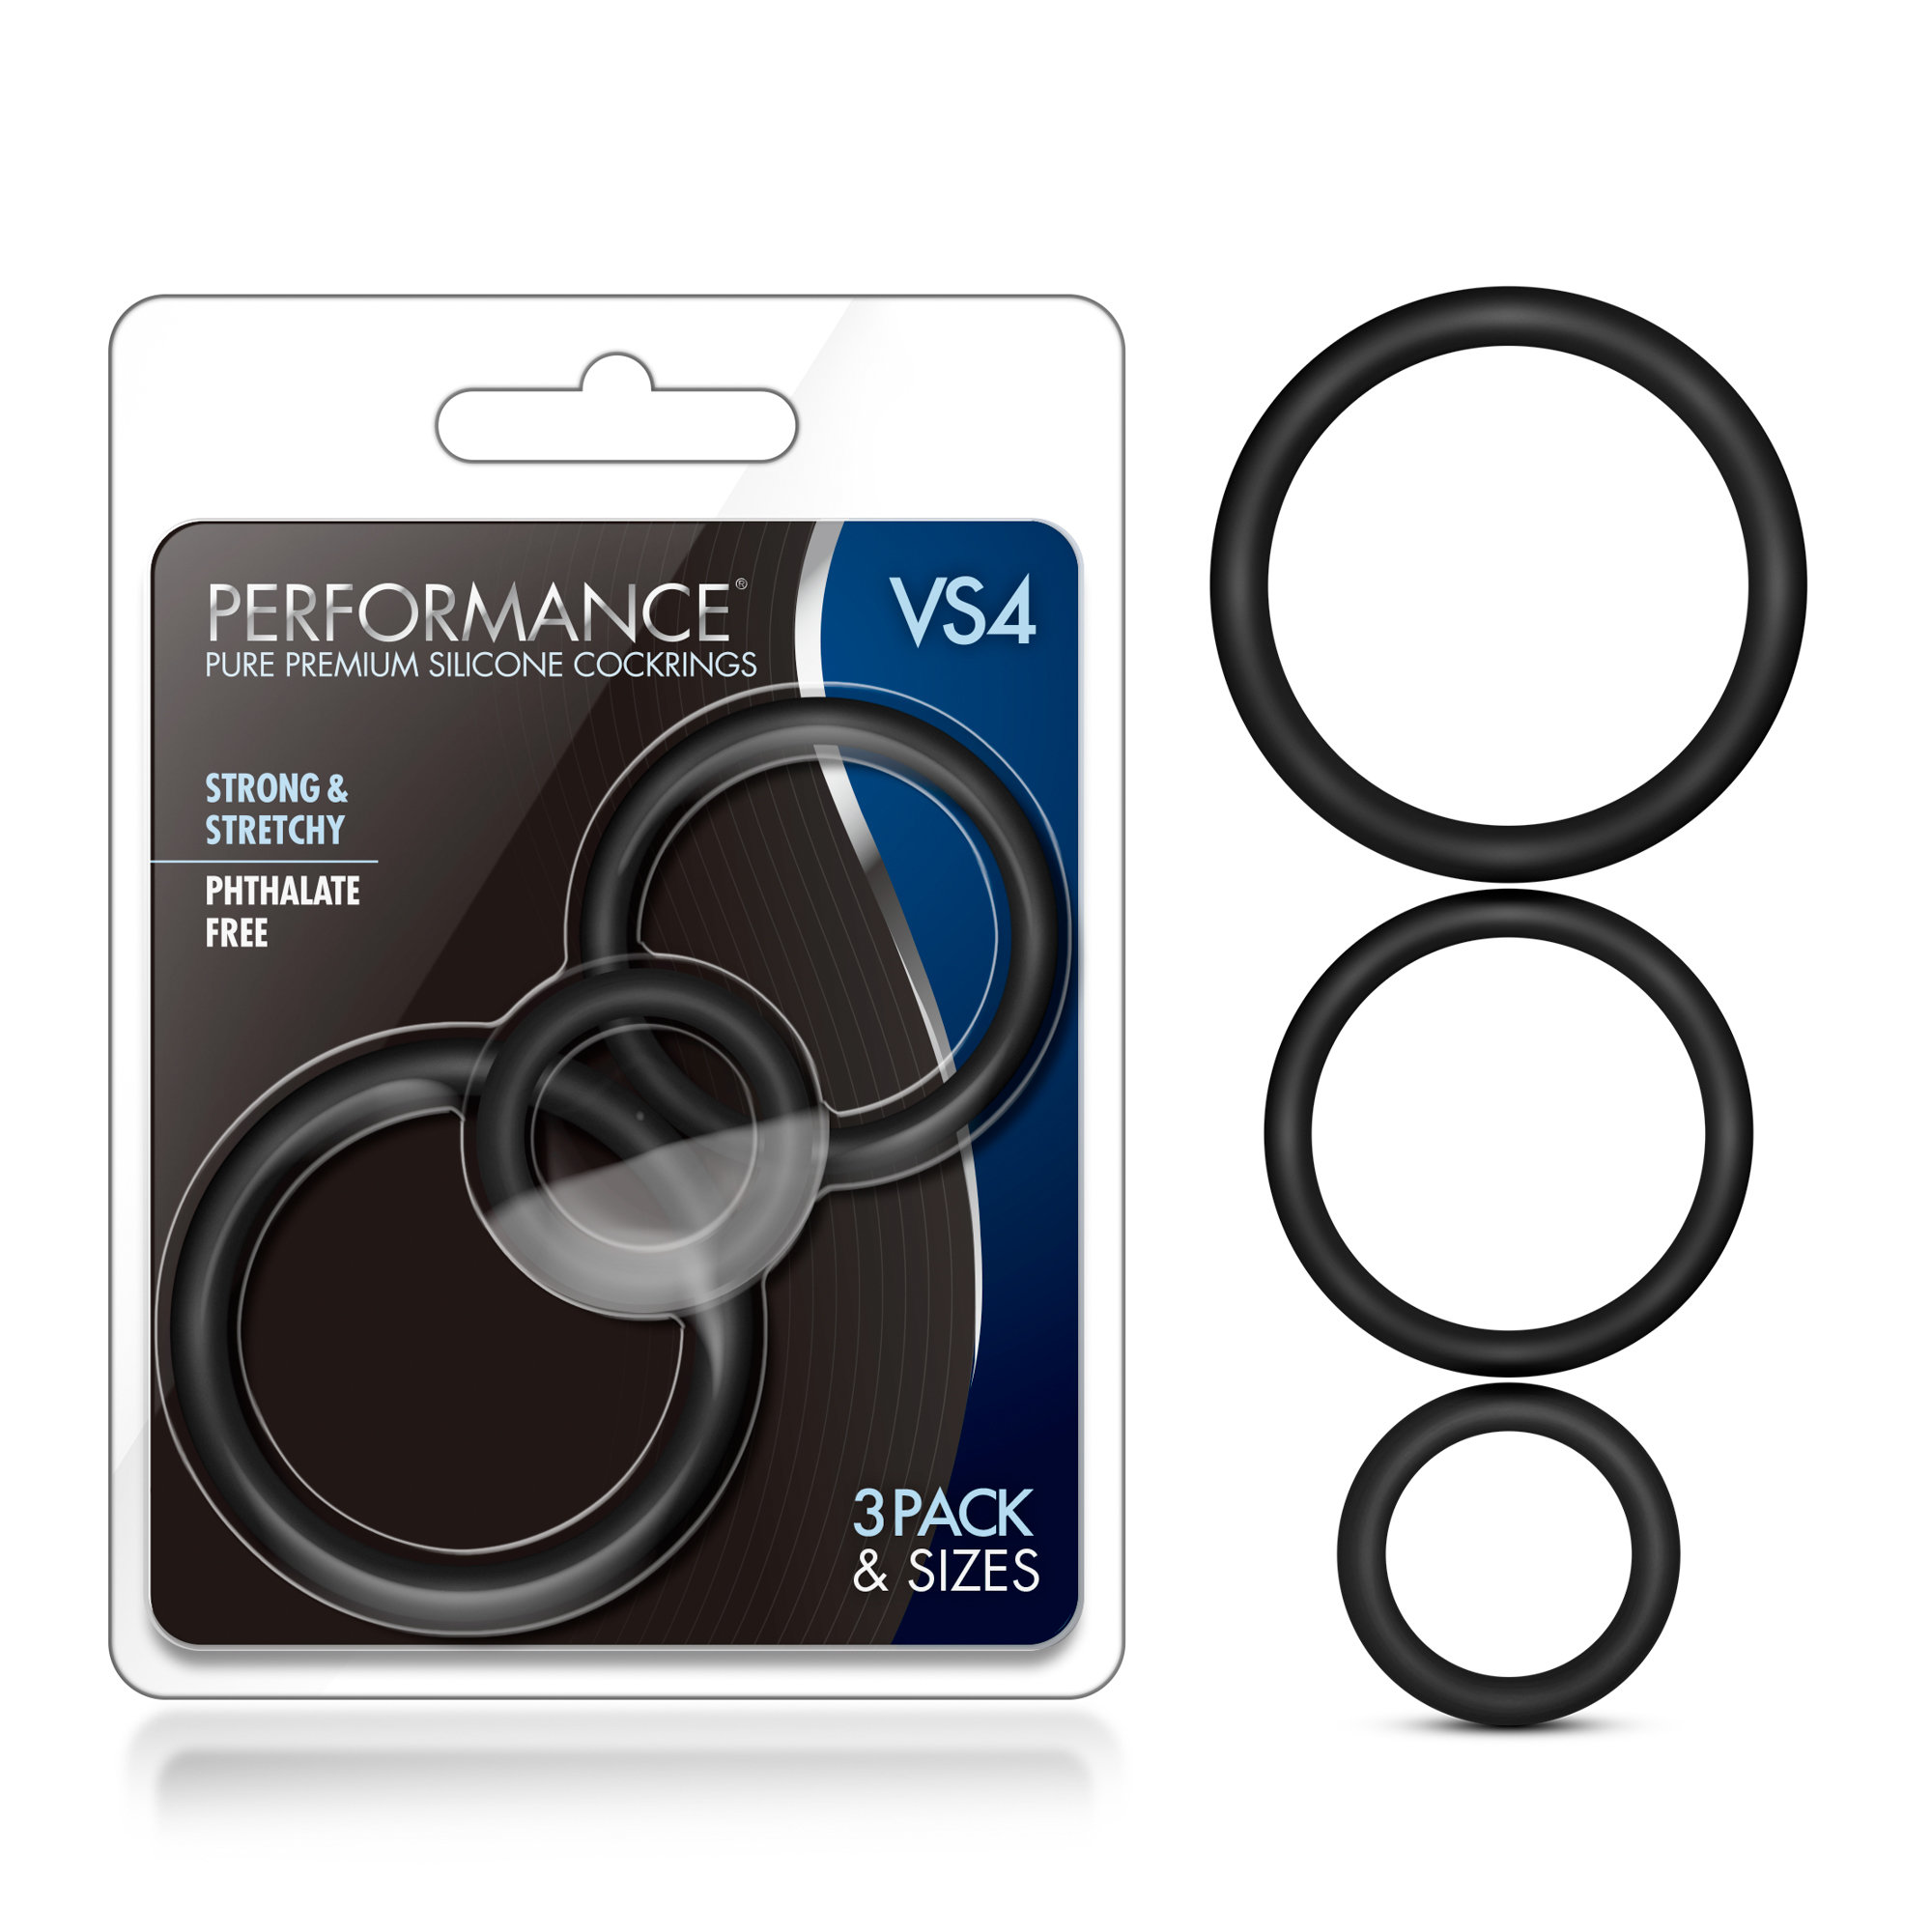 Performance - VS4 Pure Premium Silicone Cock Ring Set - Black